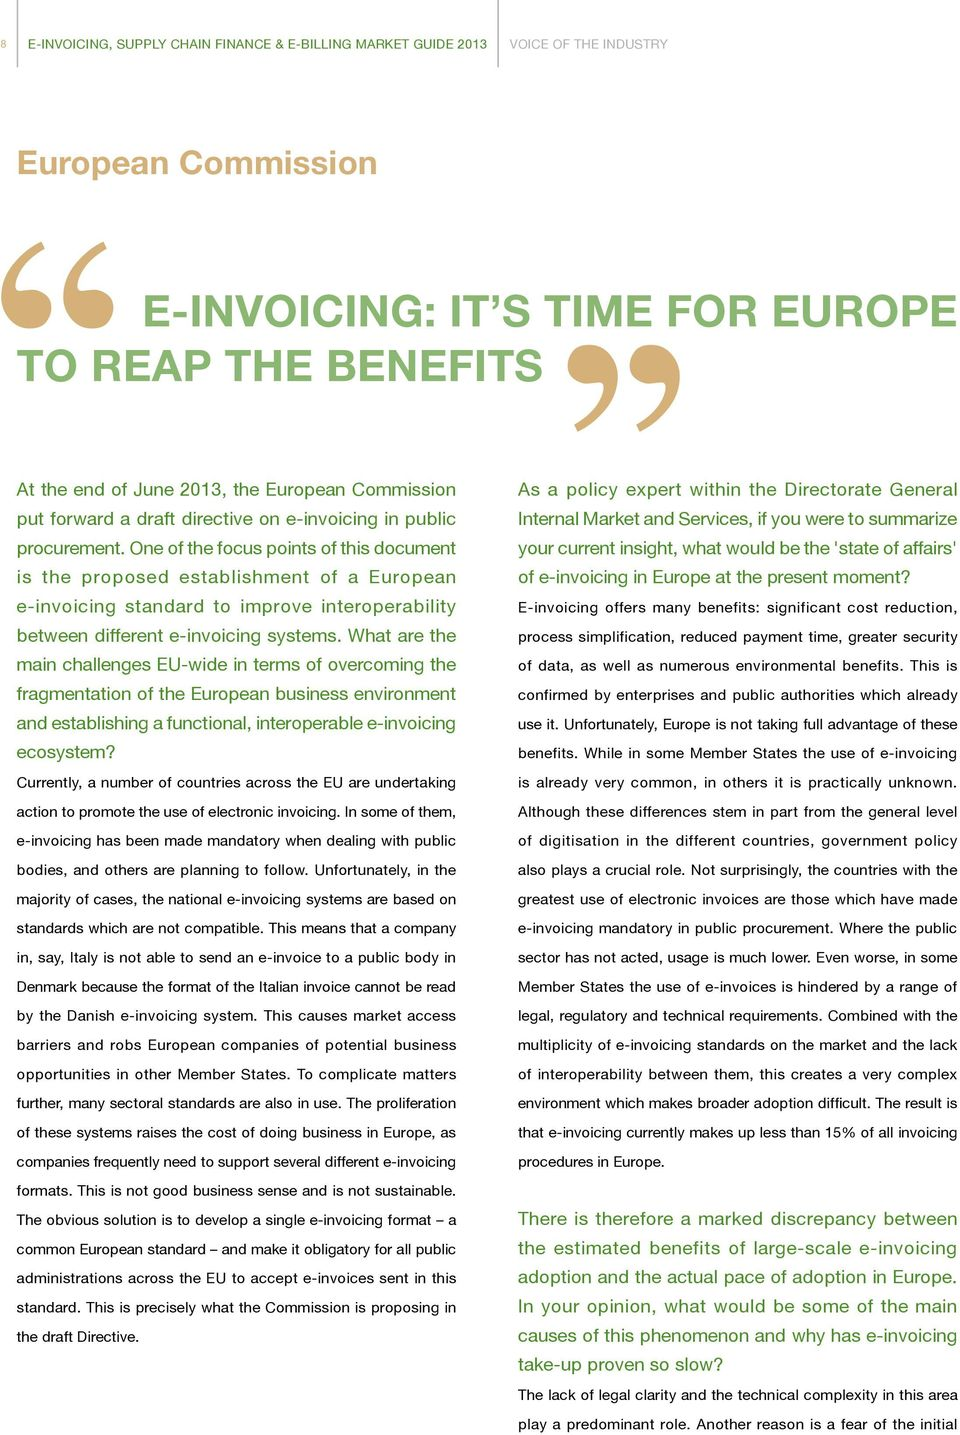 One of the focus points of this document is the proposed establishment of a European e-invoicing standard to improve interoperability between different e-invoicing systems.